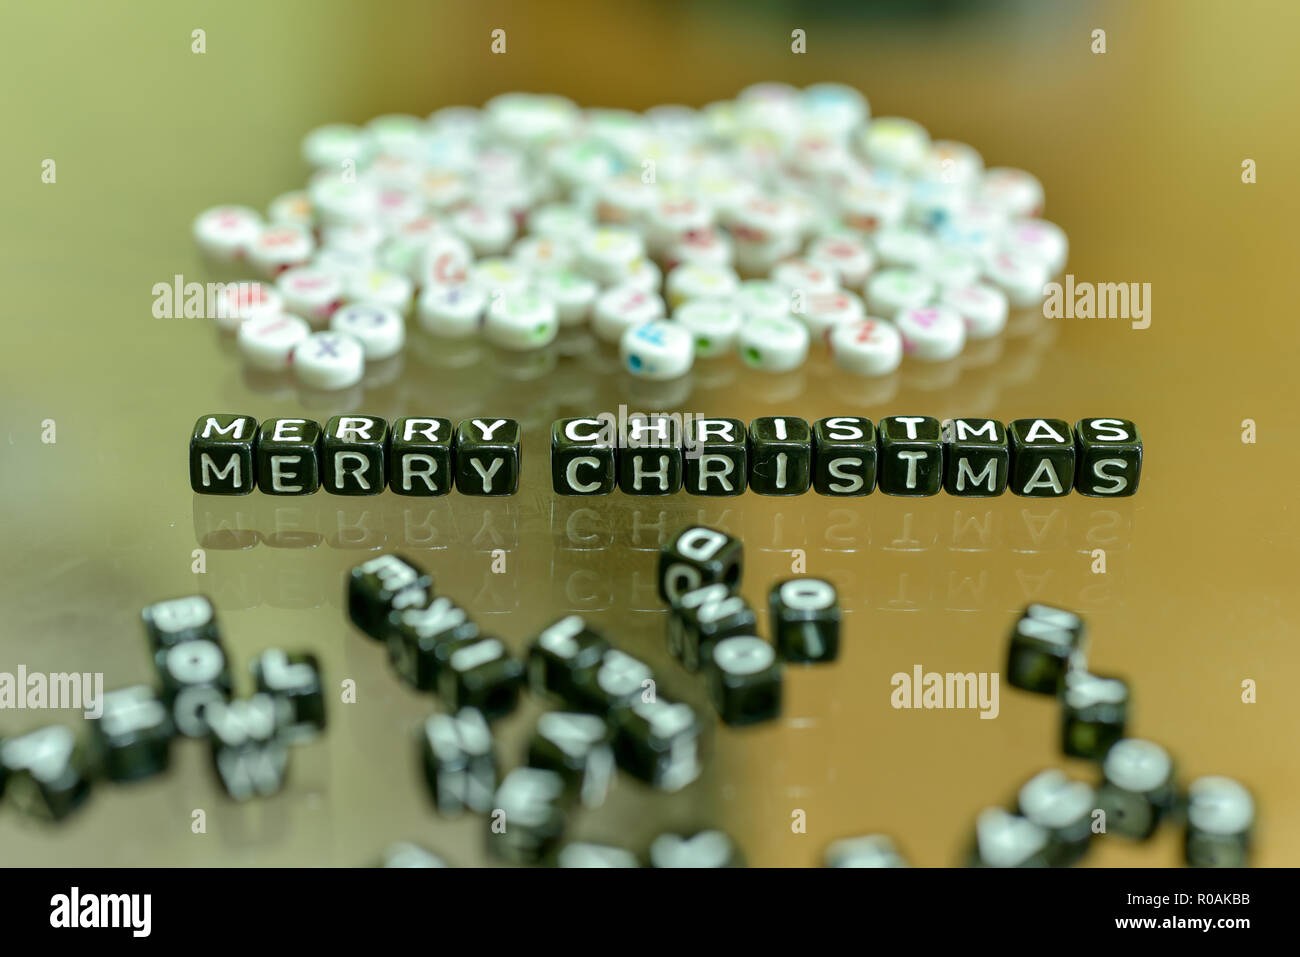 Merry Christmas Written On Red Stock Photos & Merry Christmas ...